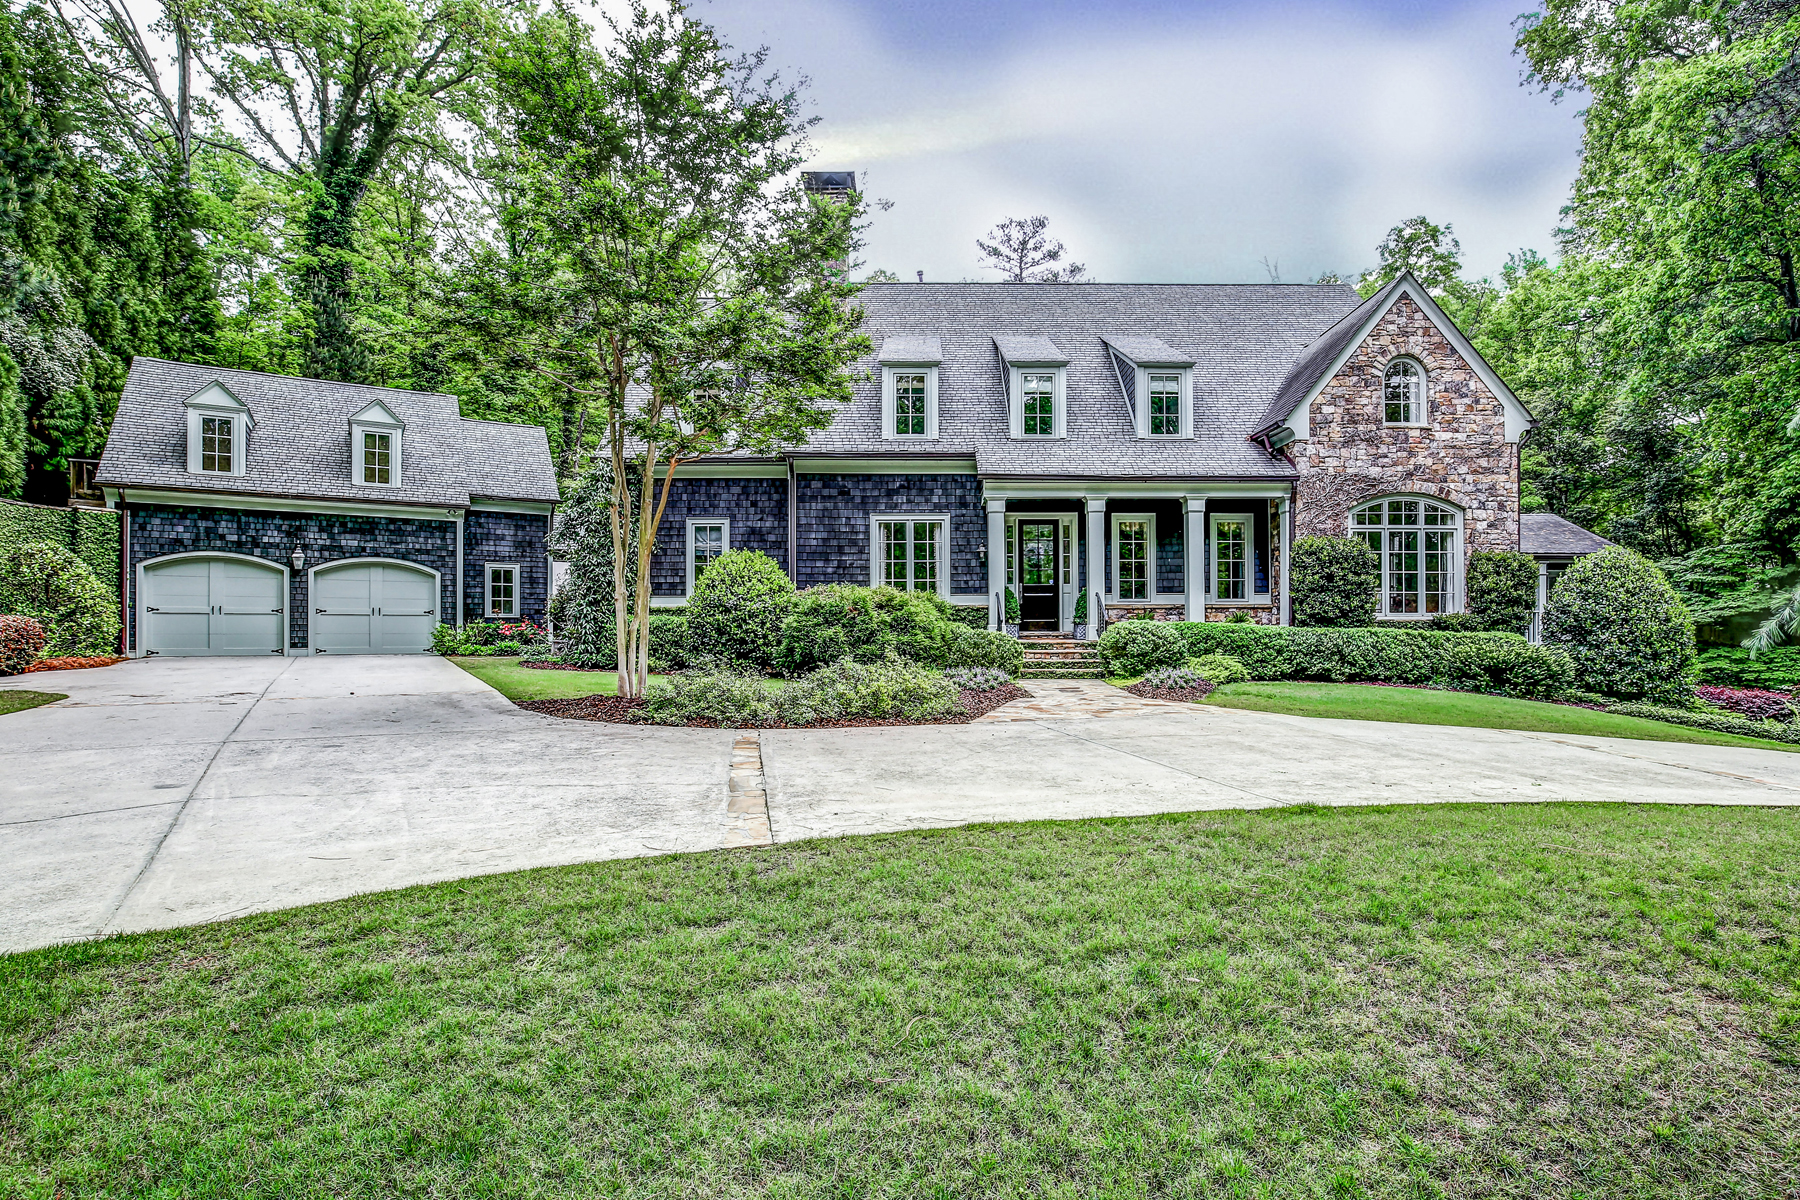 Single Family Home for Sale at Buckhead Cape Cod Stunner 4065 Beechwood Drive NW Buckhead, Atlanta, Georgia, 30327 United States